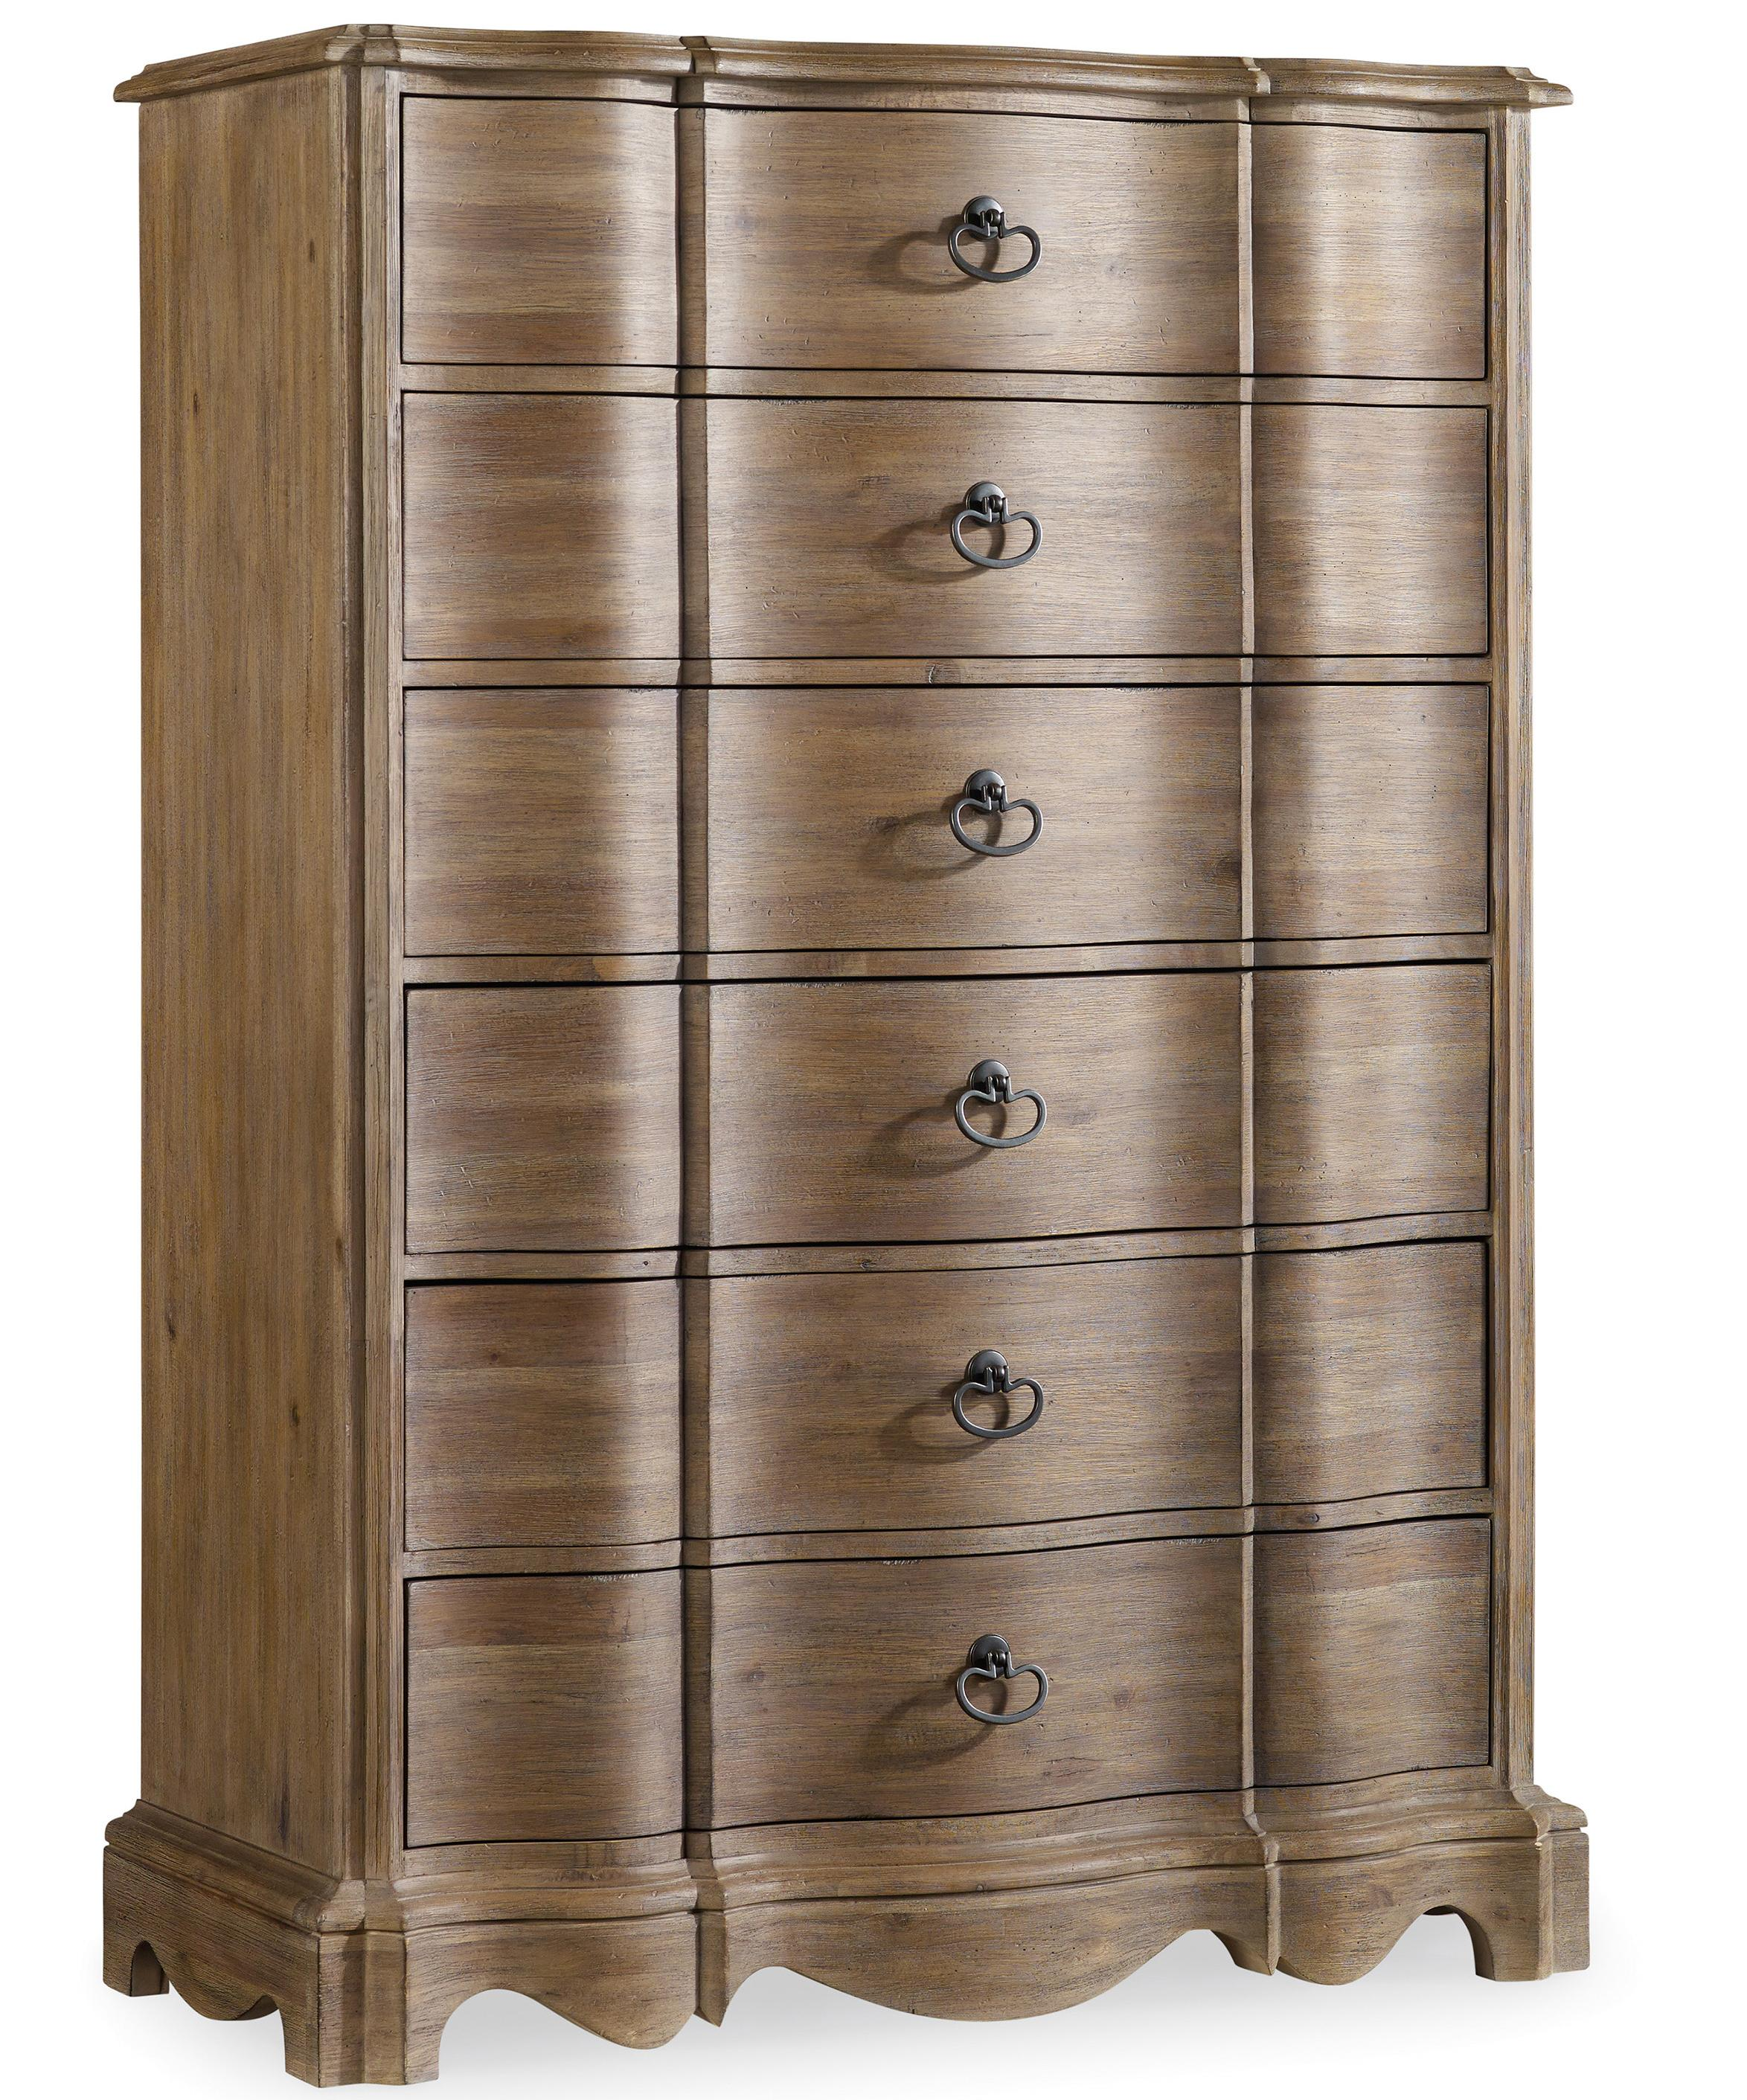 Hamilton Home Corsica Drawer Chest - Item Number: 5180-90010